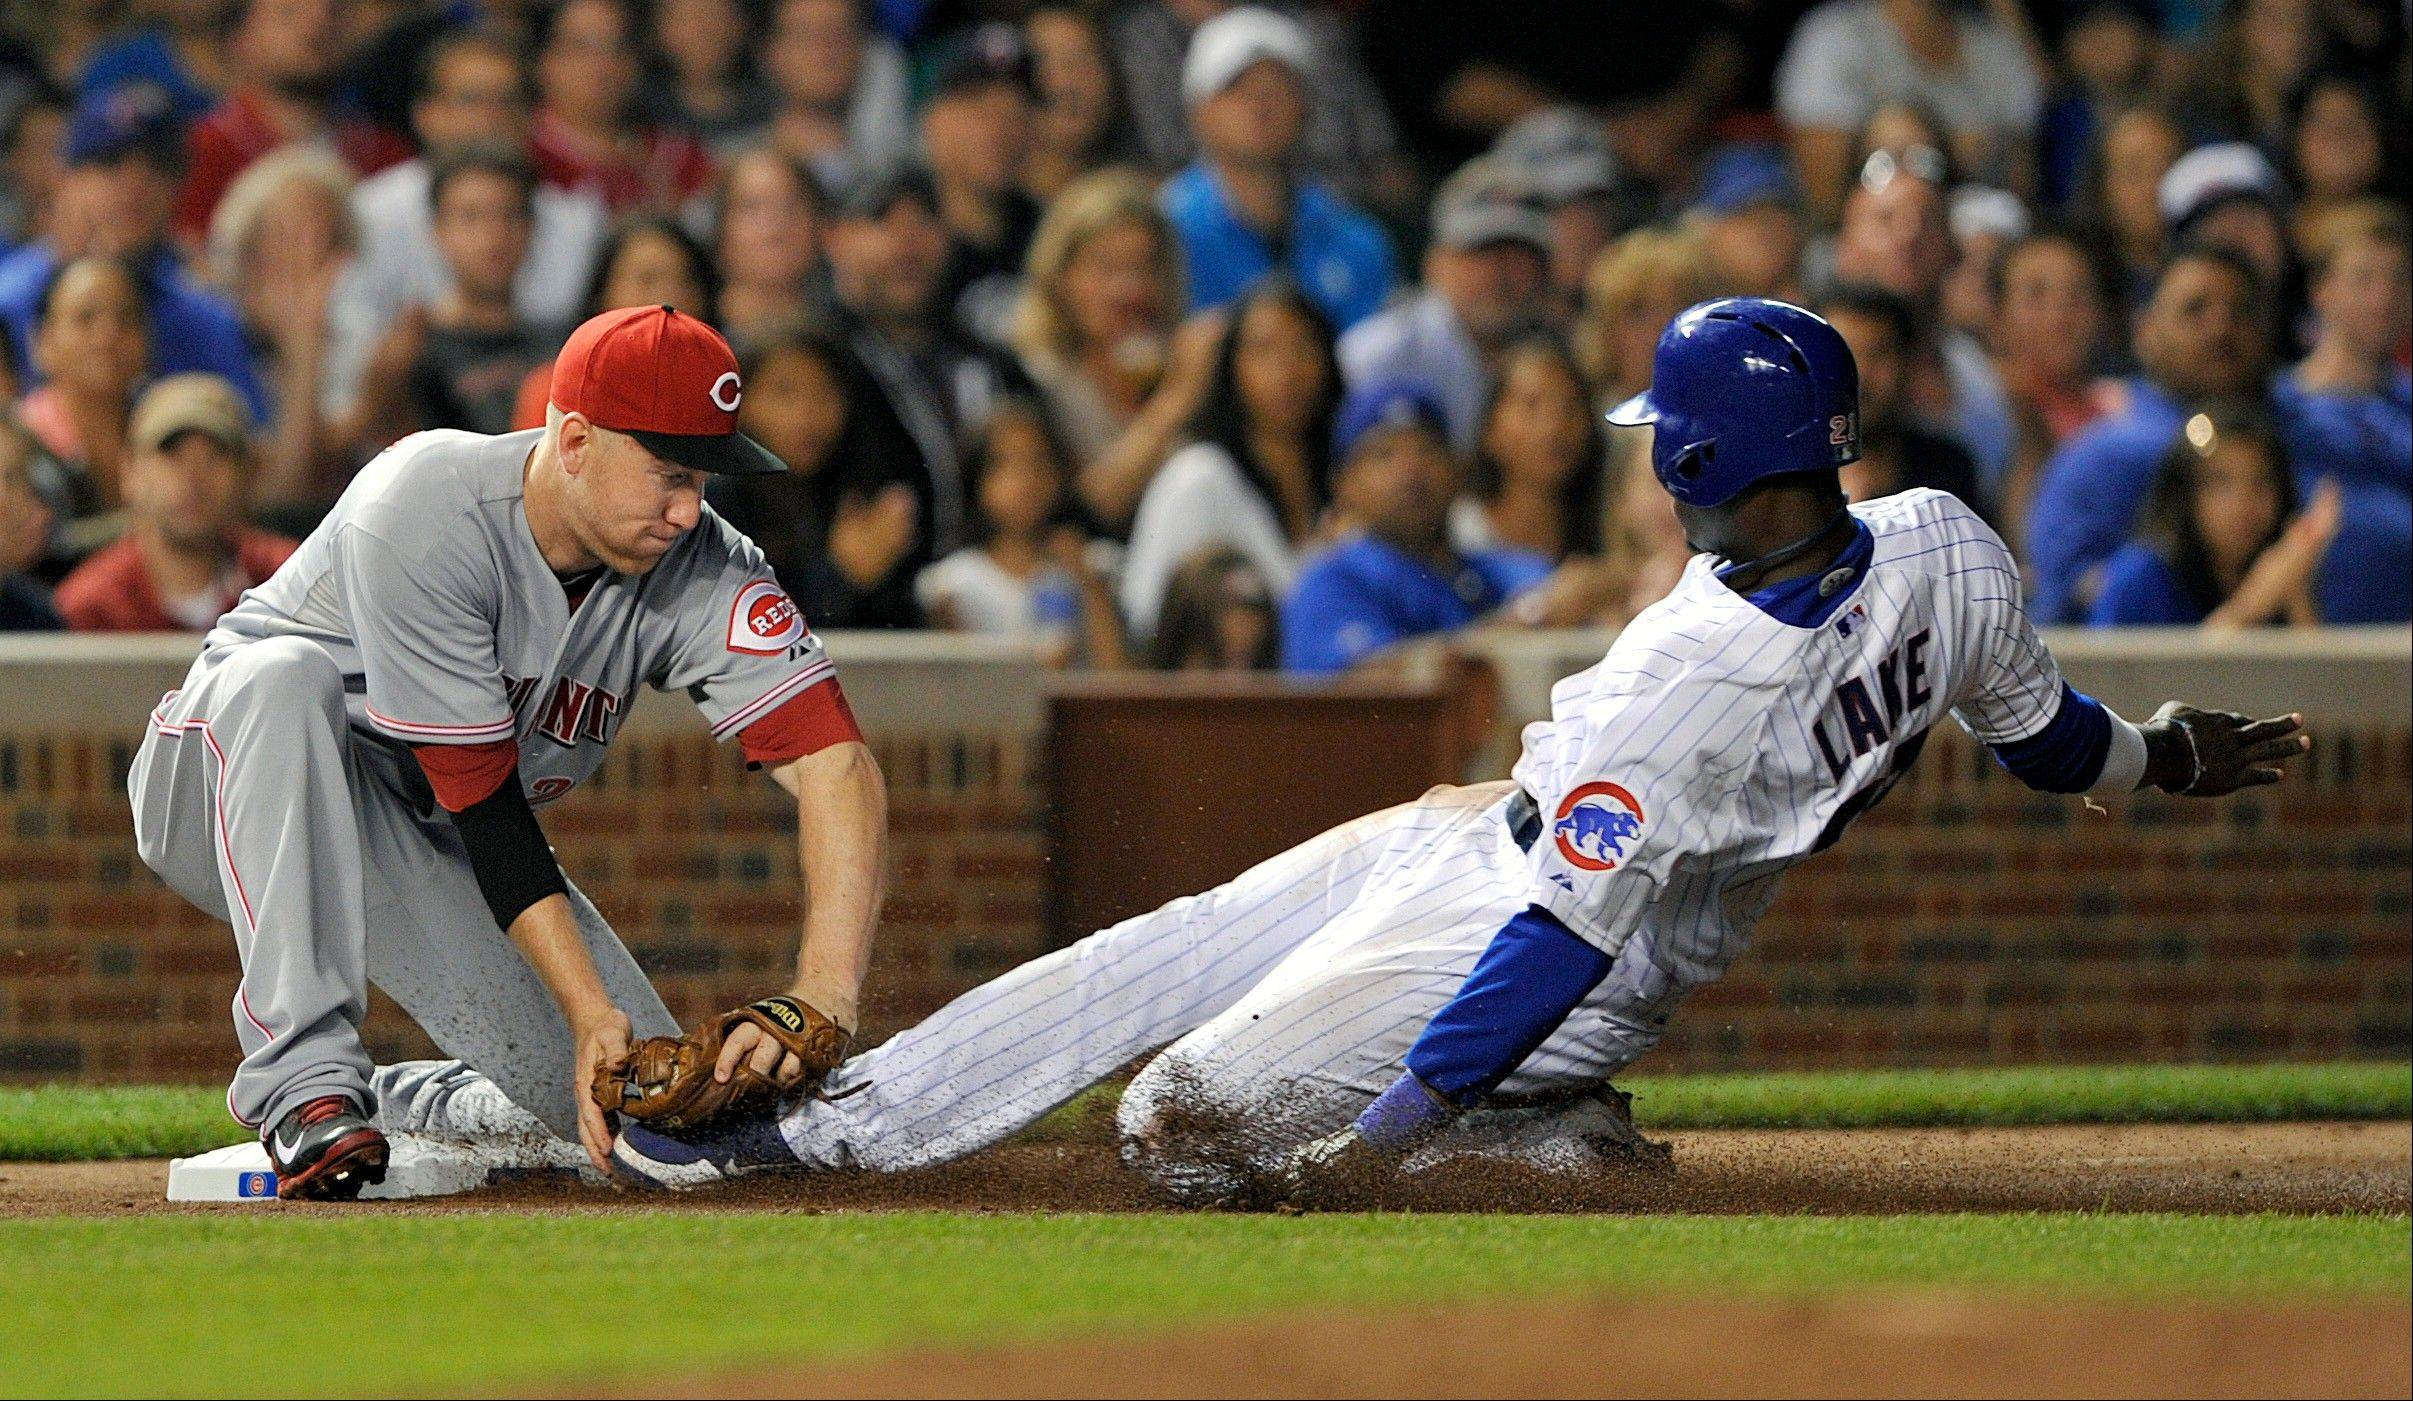 Cincinnati�s Todd Frazier tags out the Cubs� Junior Lake at third base after a single by Anthony Rizzo during the sixth inning Monday in Chicago.